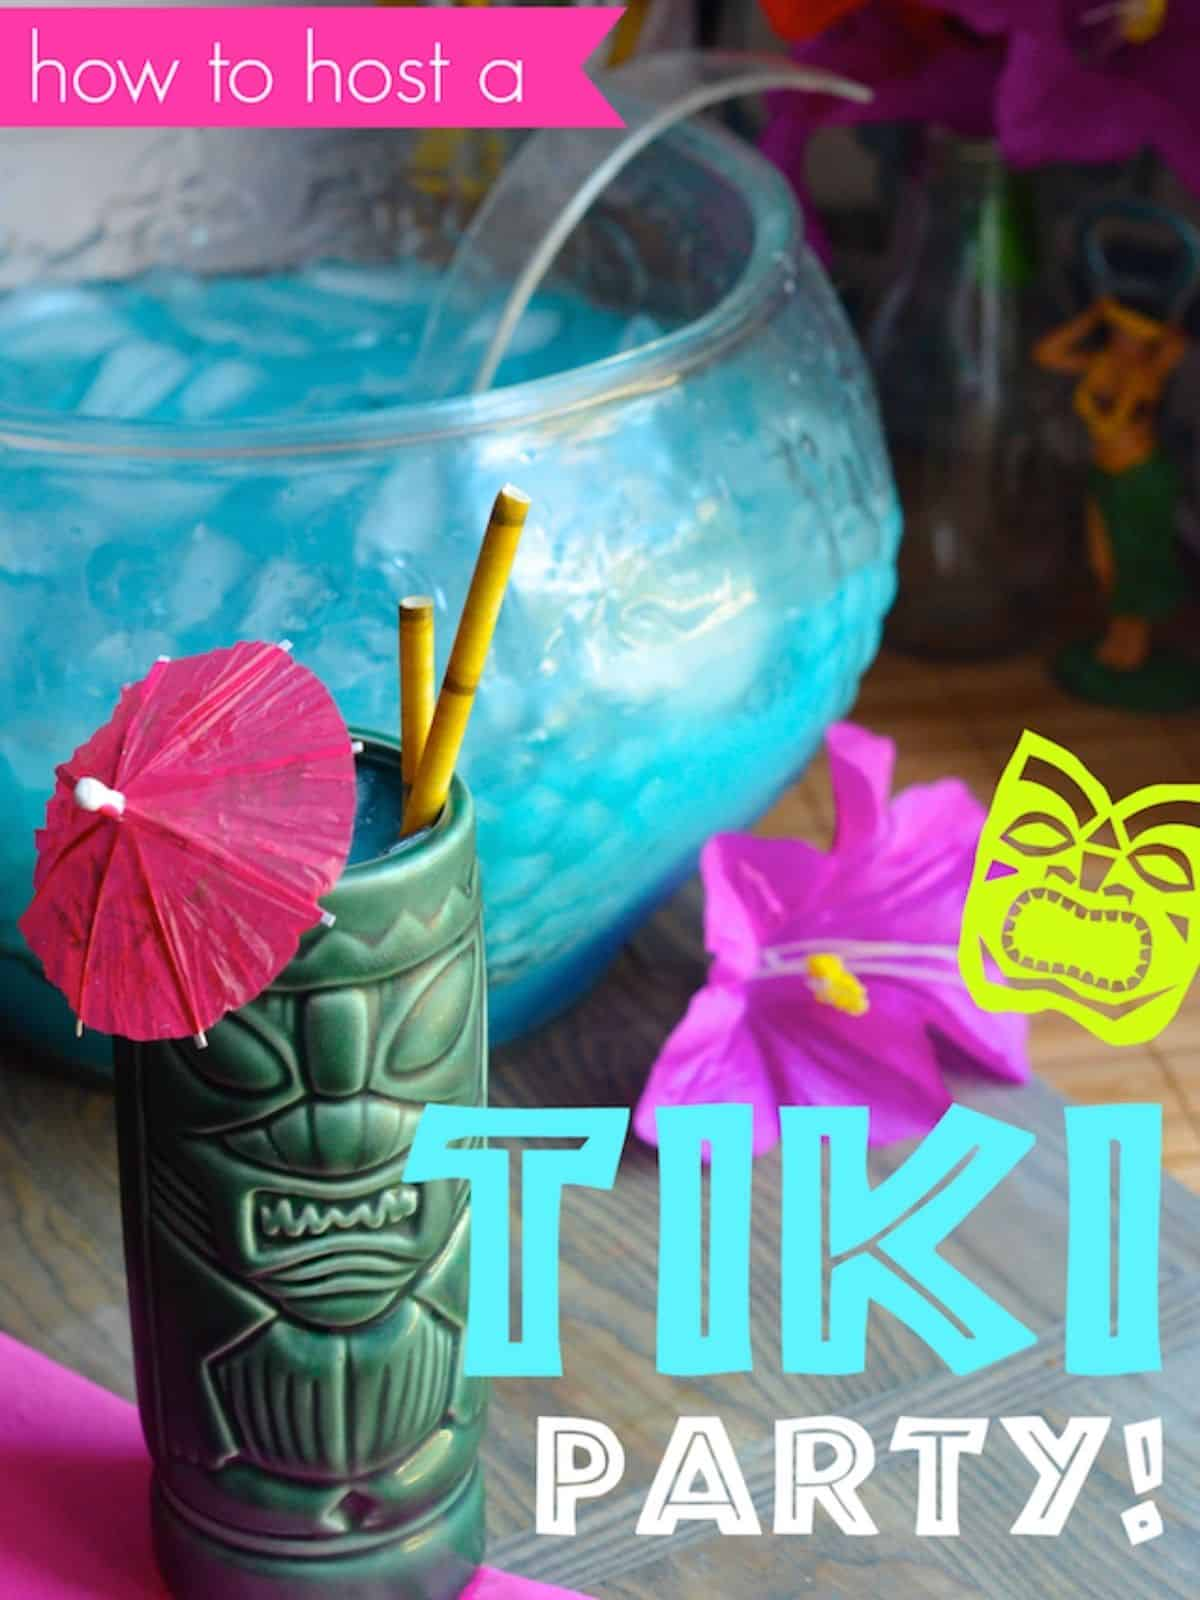 tiki bar party with punch and cup